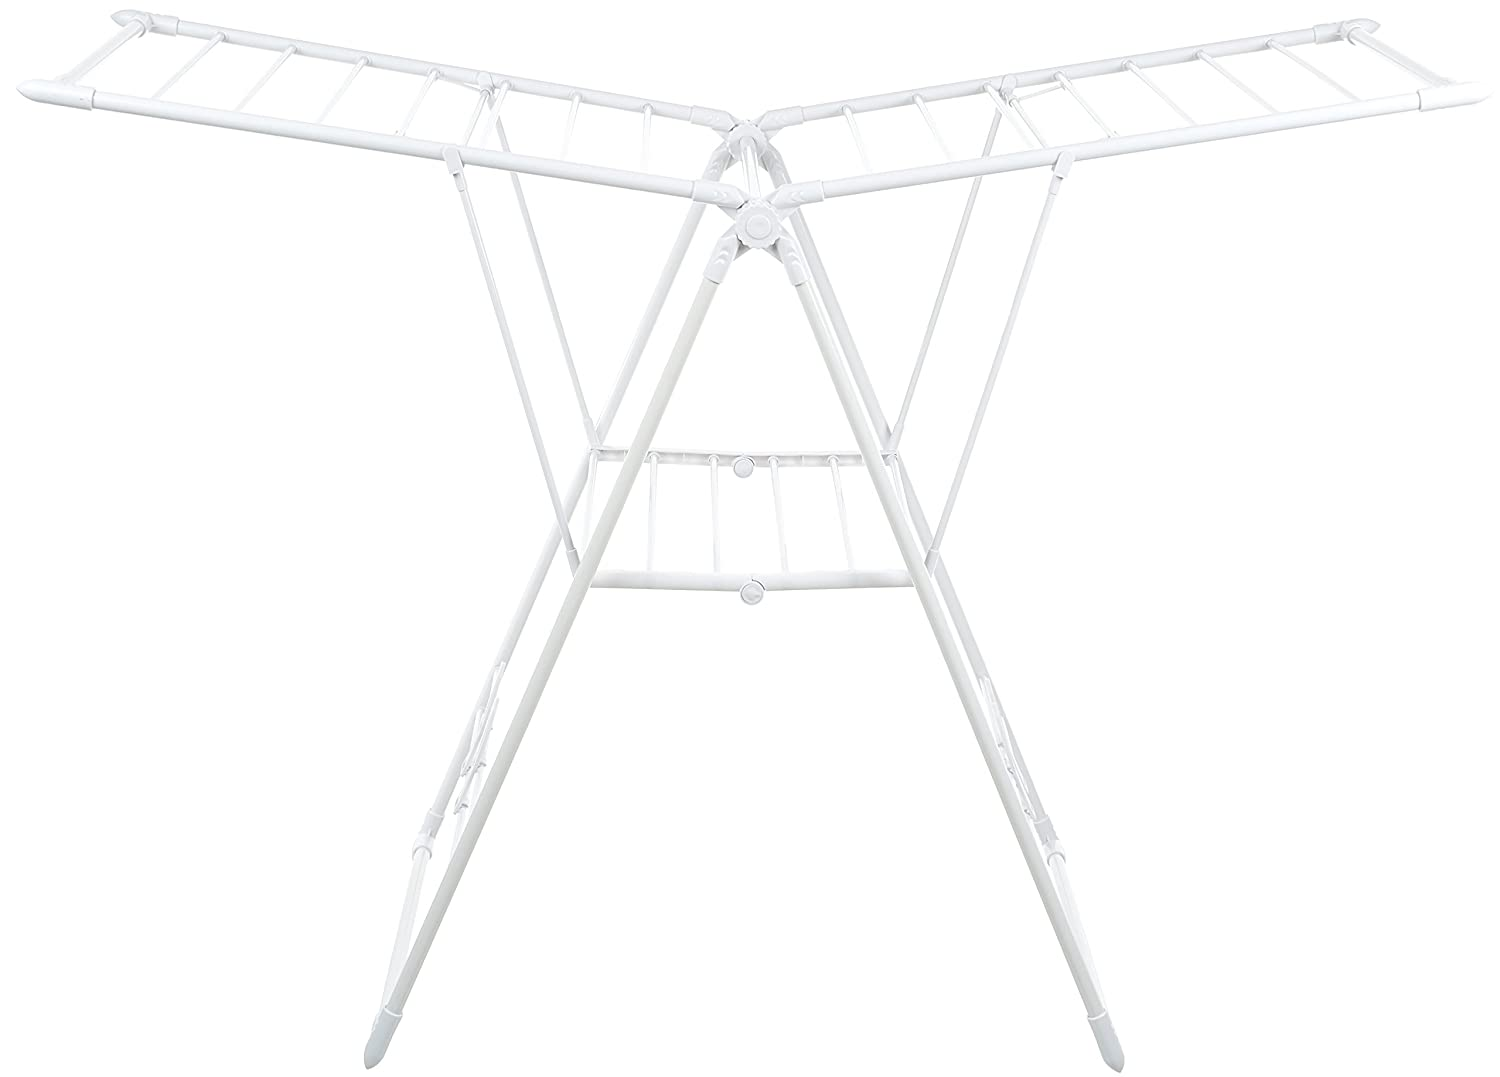 AmazonBasics Gullwing Clothes Drying Rack - White WIGAR-030